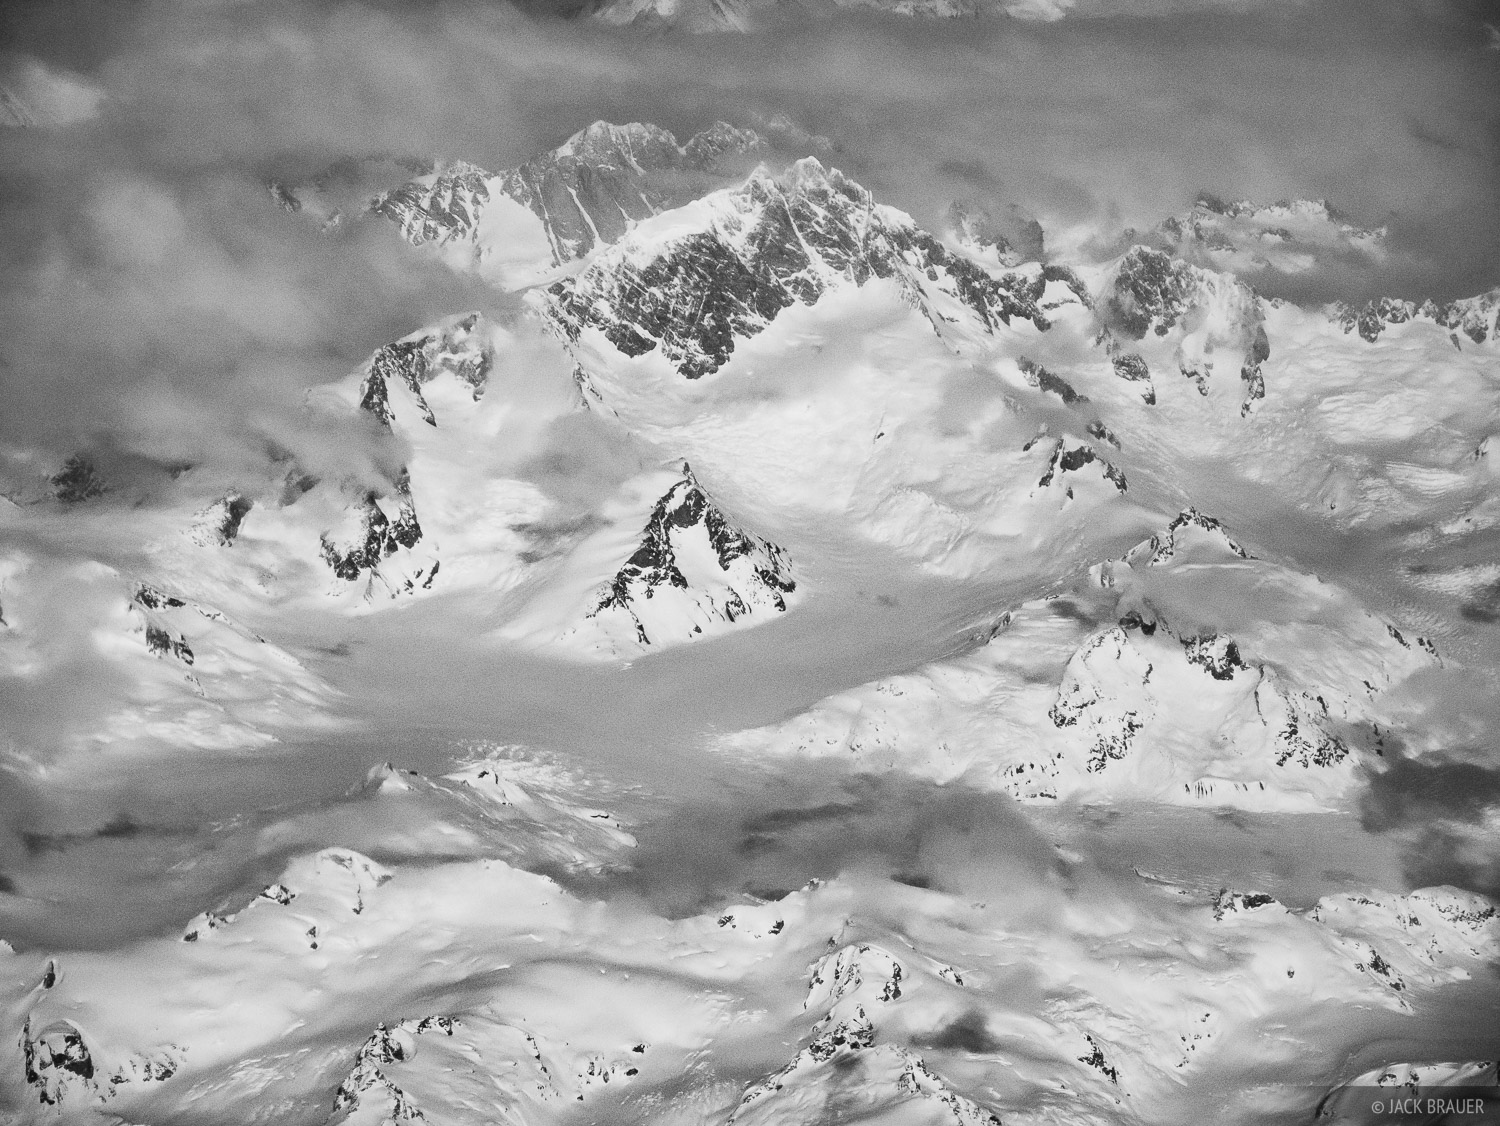 Aerial view of Mount Waddington, at 13,186 ft. the highest mountain in the Coastal Range.